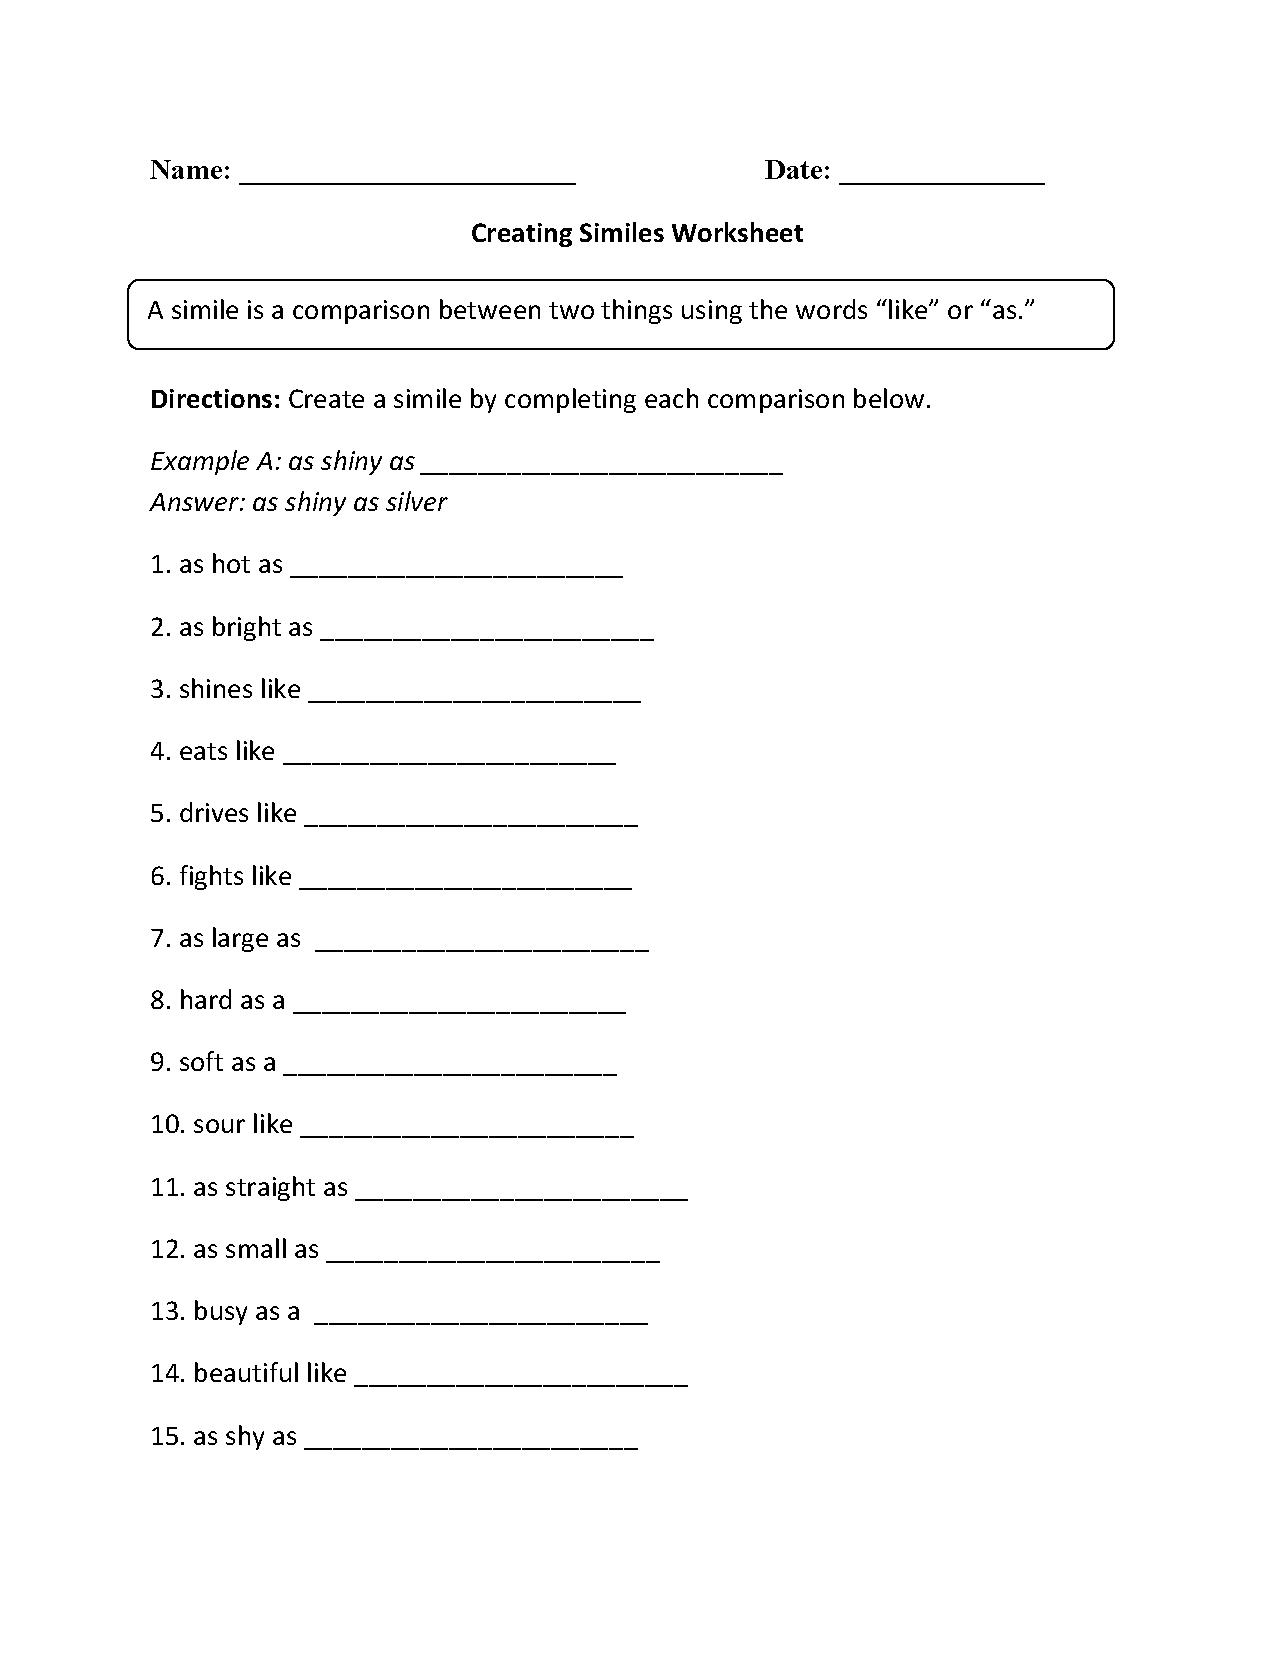 Creating Similes Worksheet | Education | Pinterest